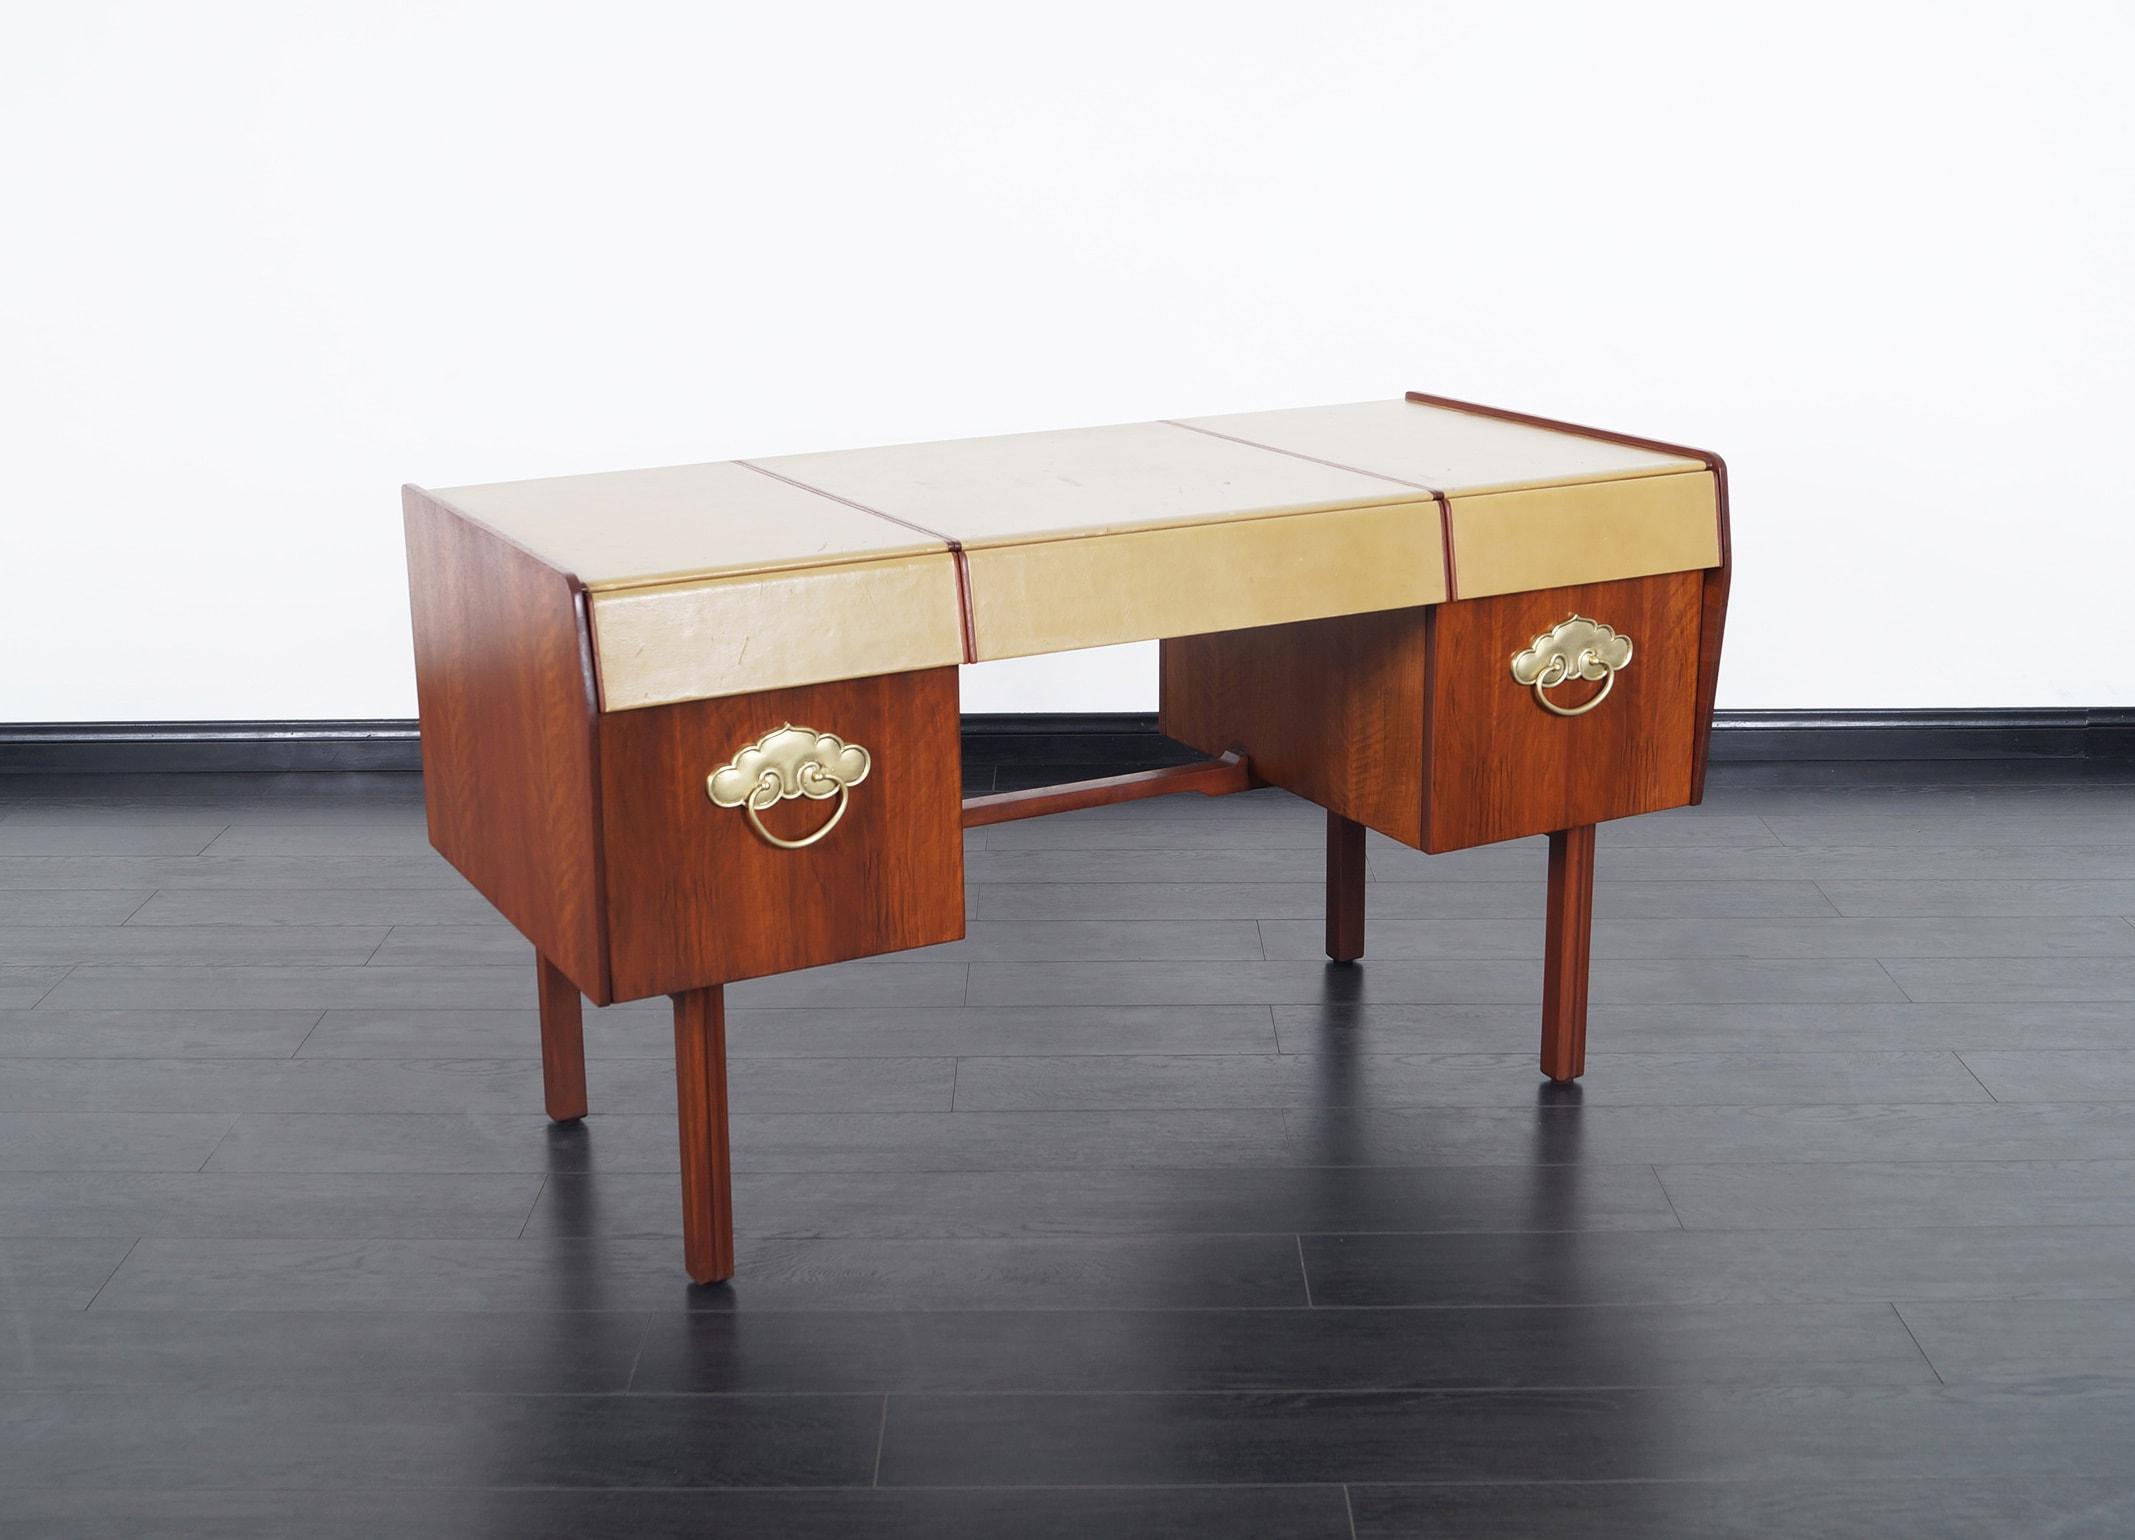 Vintage Leather Top Desk by John Widdicomb